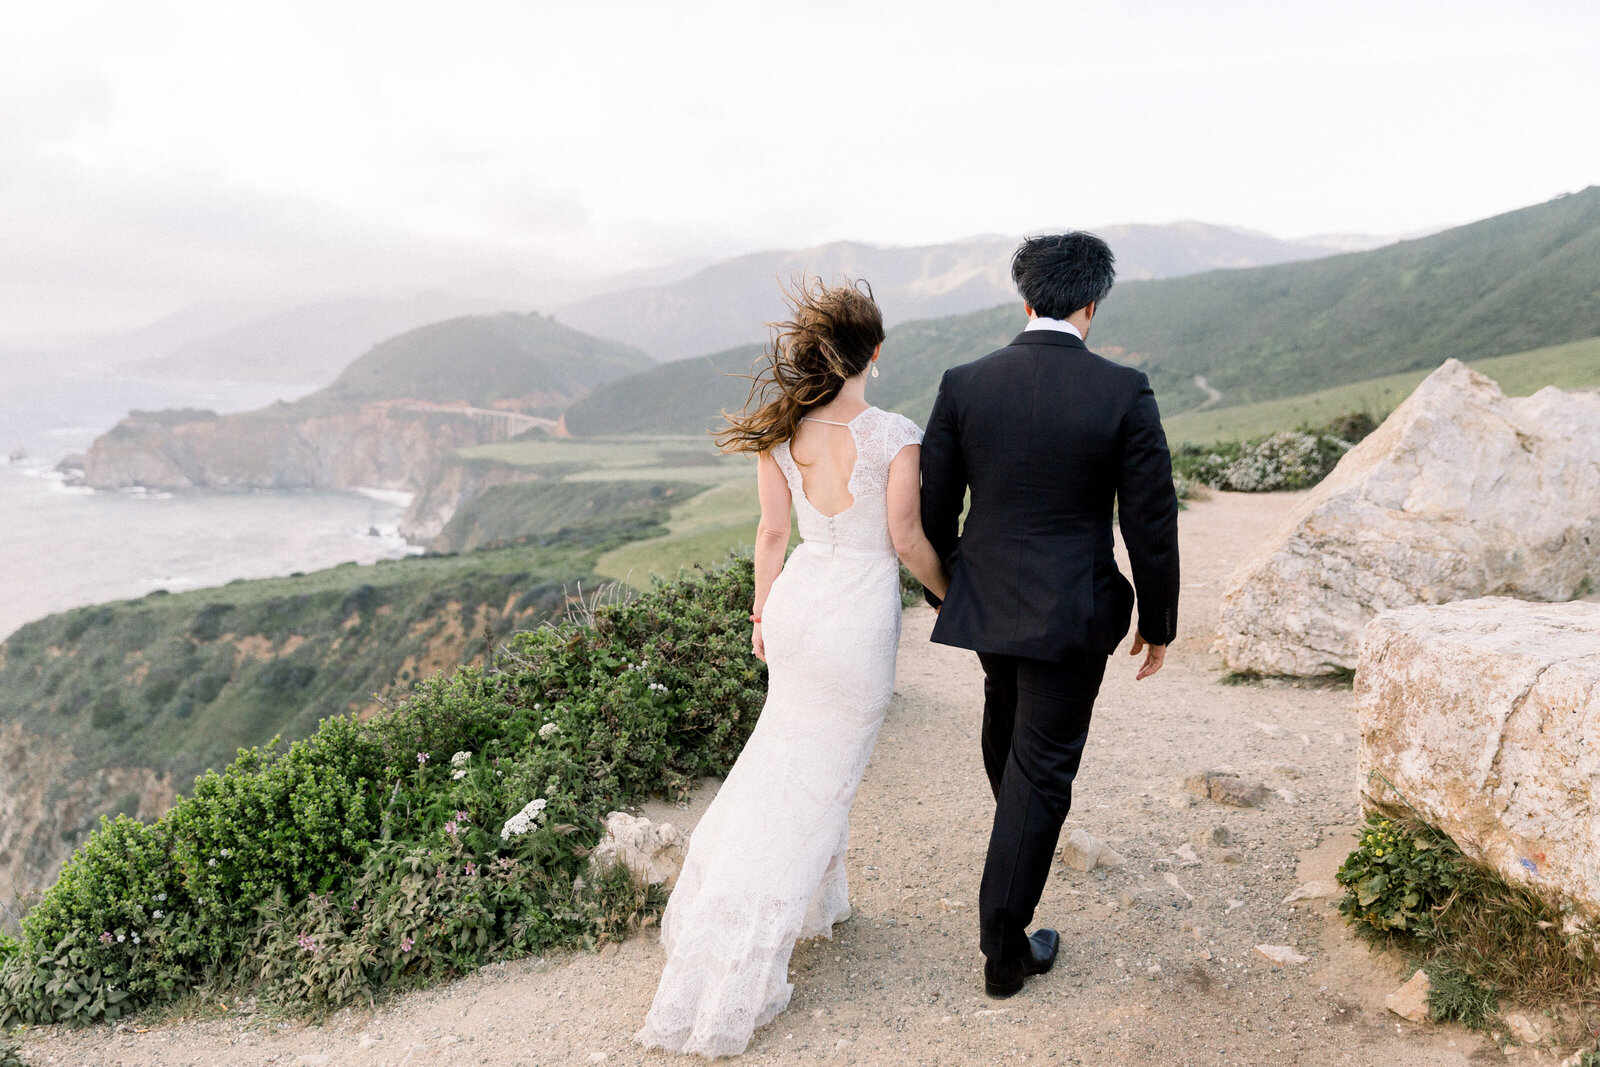 larissa-cleveland-elope-eleopement-intimate-wedding-photographer-san-francisco-napa-carmel-060